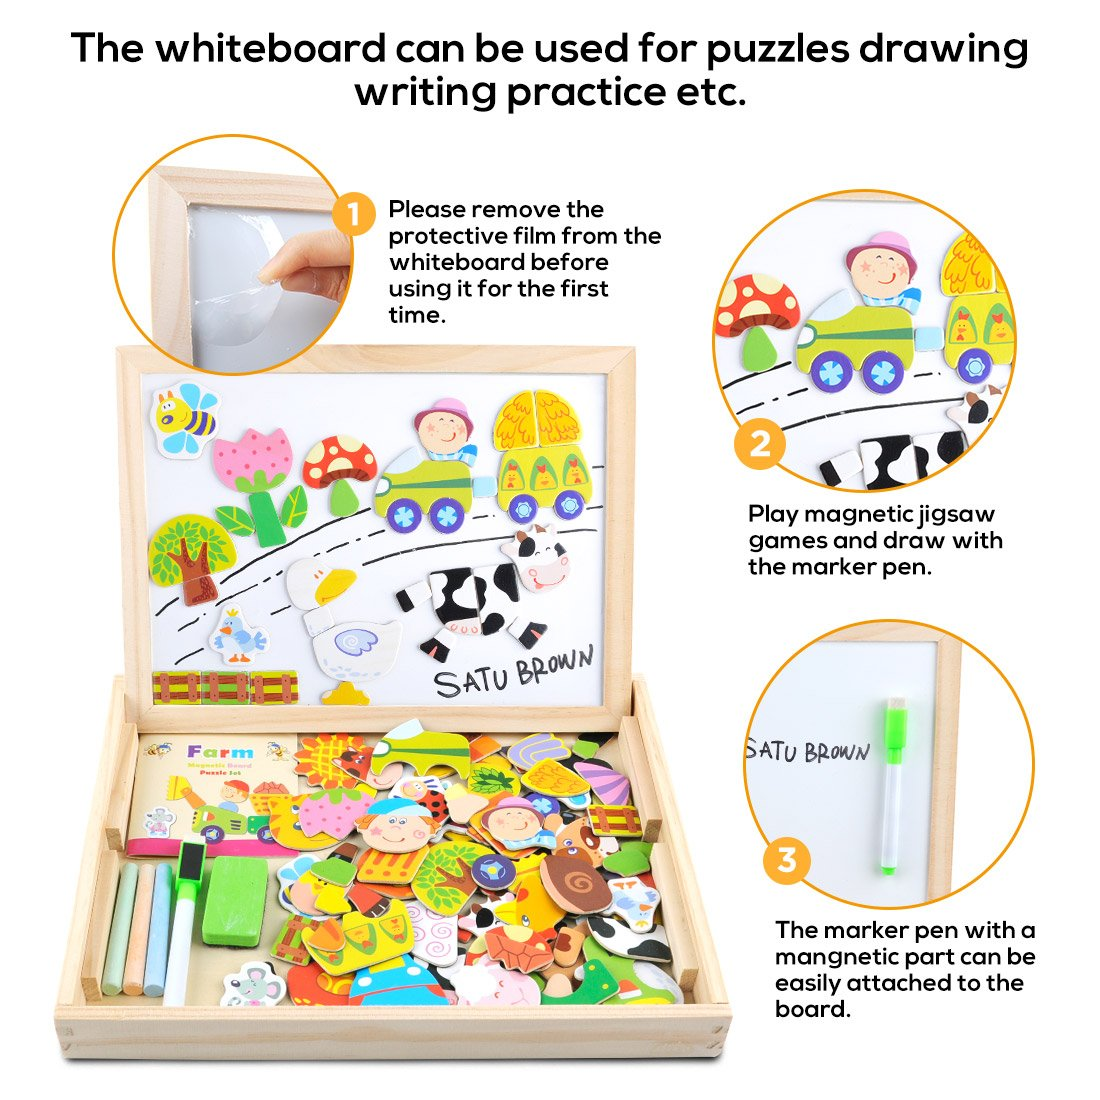 Amazon: Wooden Toy Magnetic Dry Erase Board Puzzles 100 Pieces Games,  Satu Brown Double Face Jigsaw& Drawing Easel Chalkboard Popular Educational